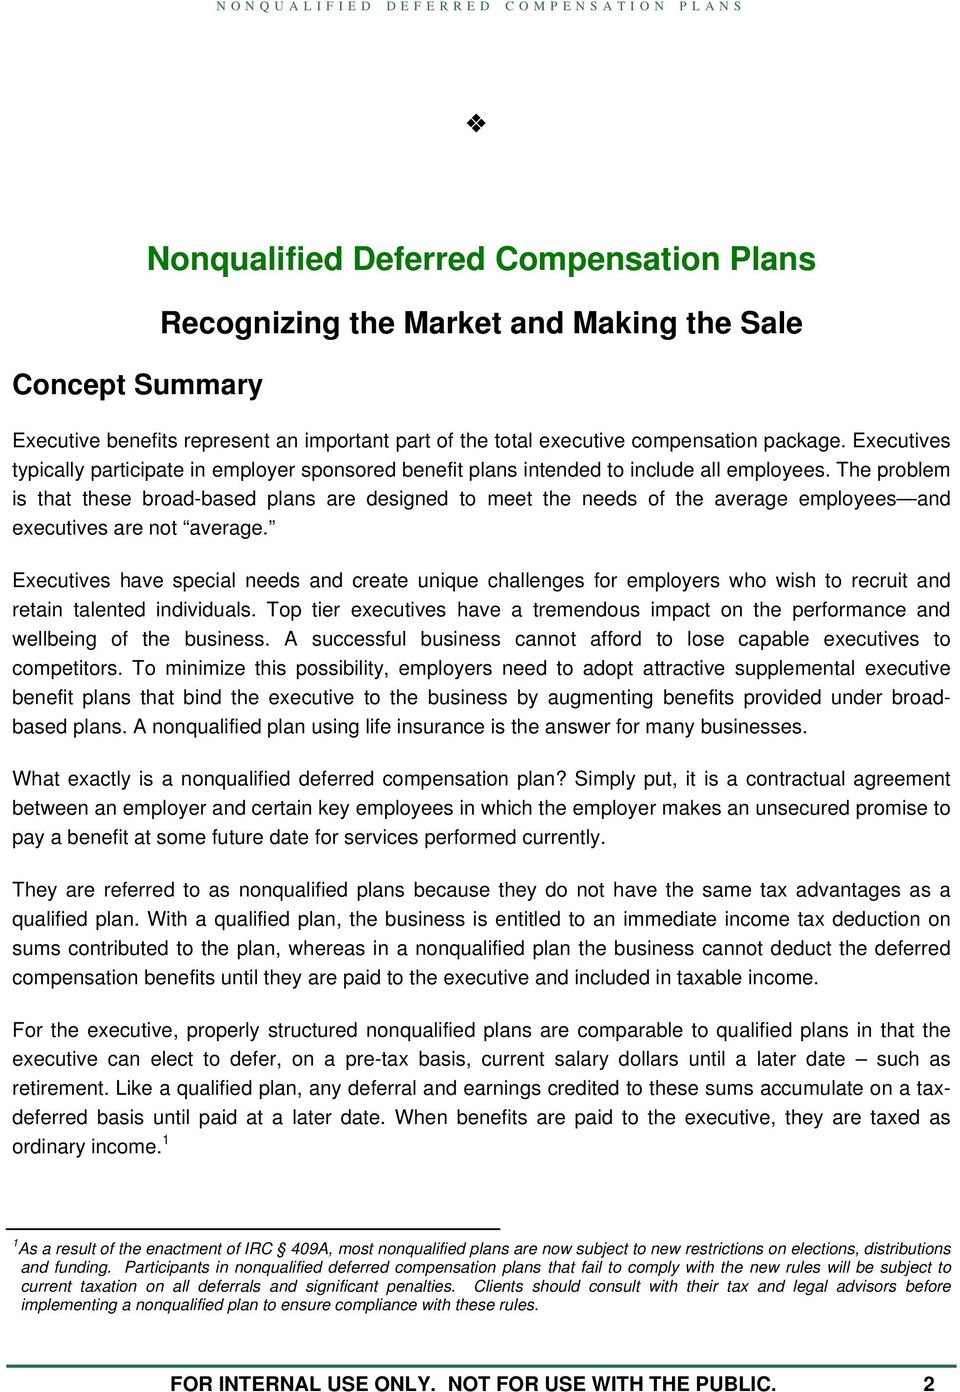 Nonqualified Deferred Compensation Plans Pdf Free Download